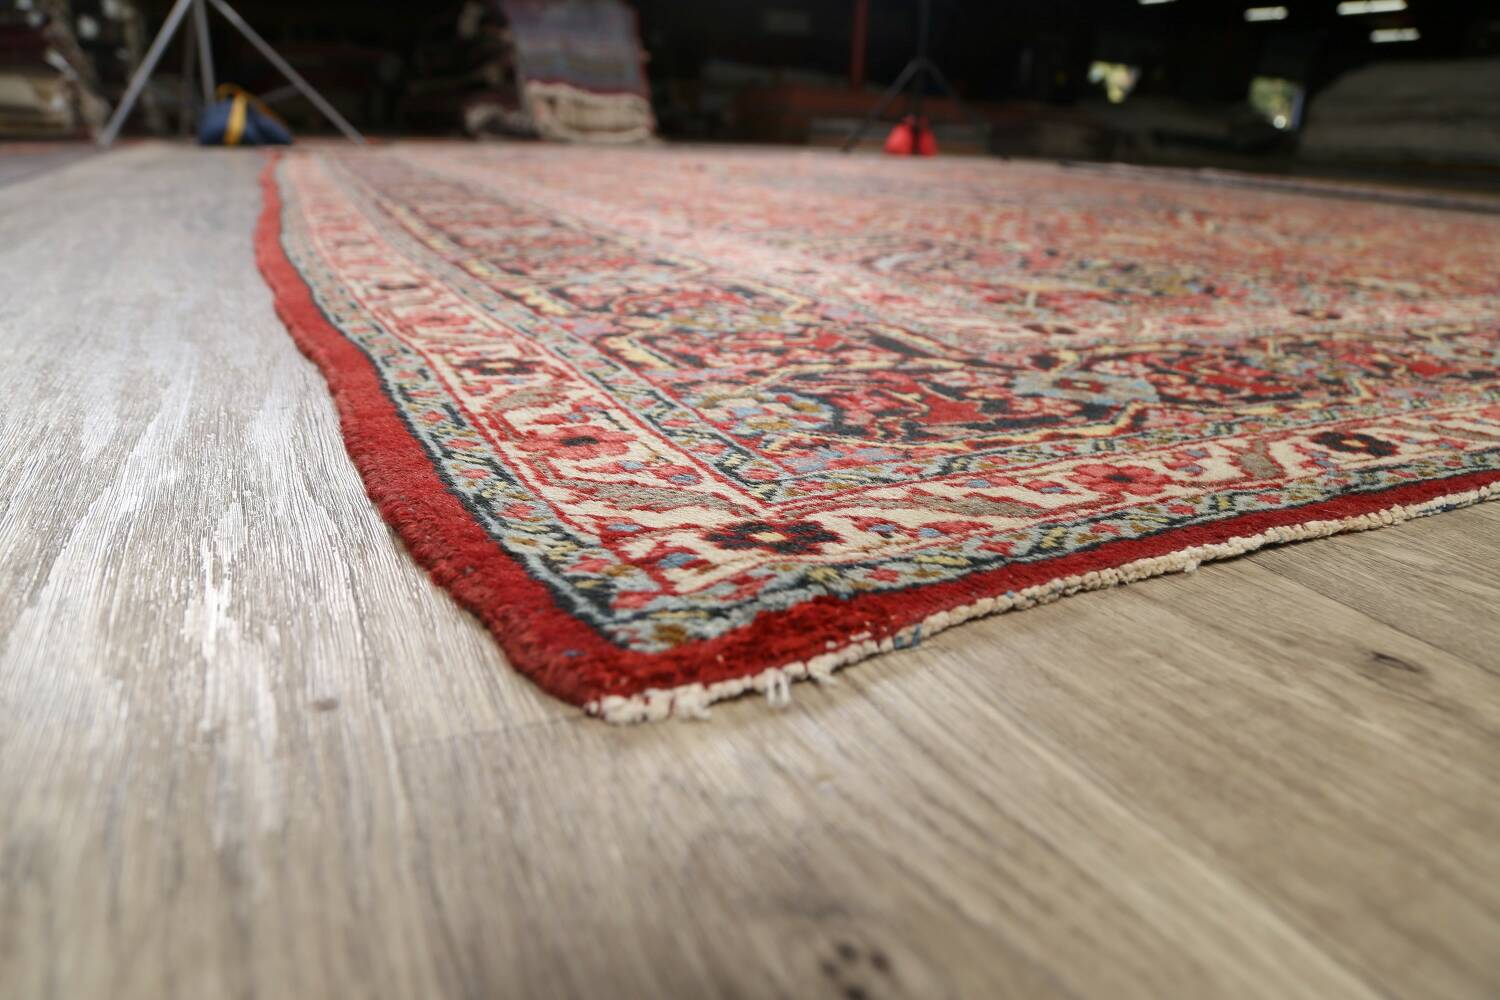 Pre-1900 Antique Sultanabad Persian Area Rug 11x13 Large image 6